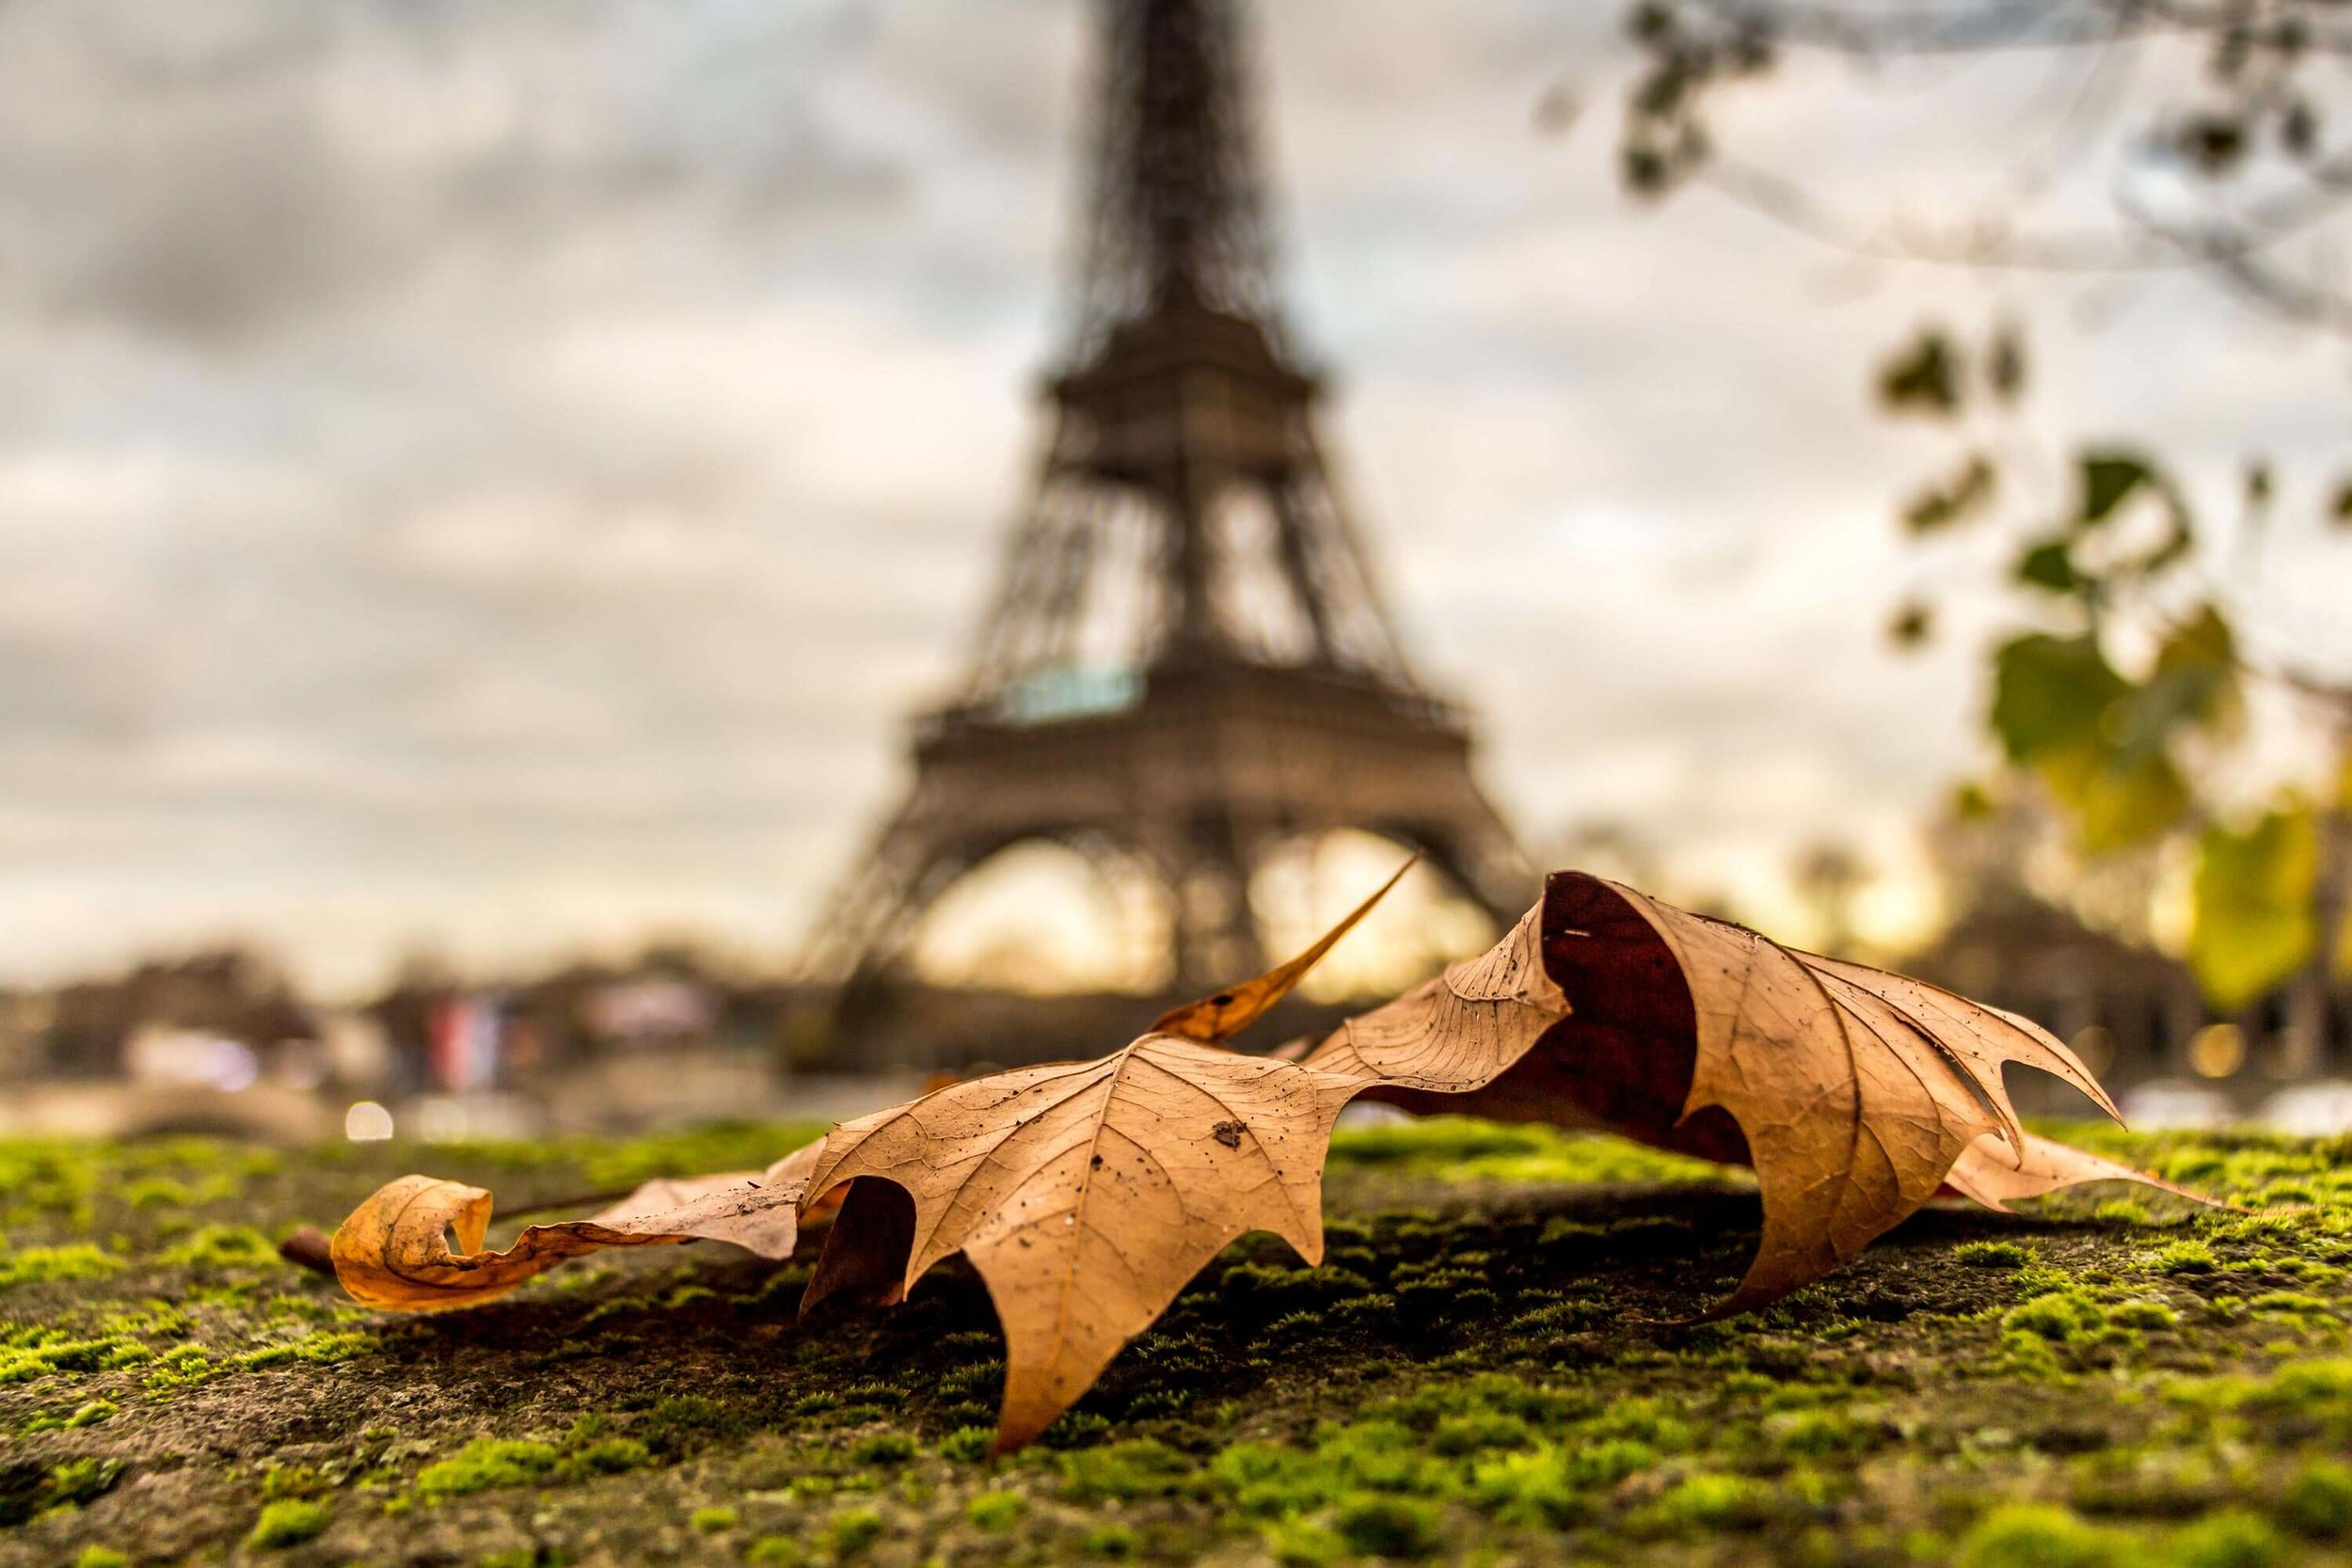 Autumn-in-Paris-4.jpg